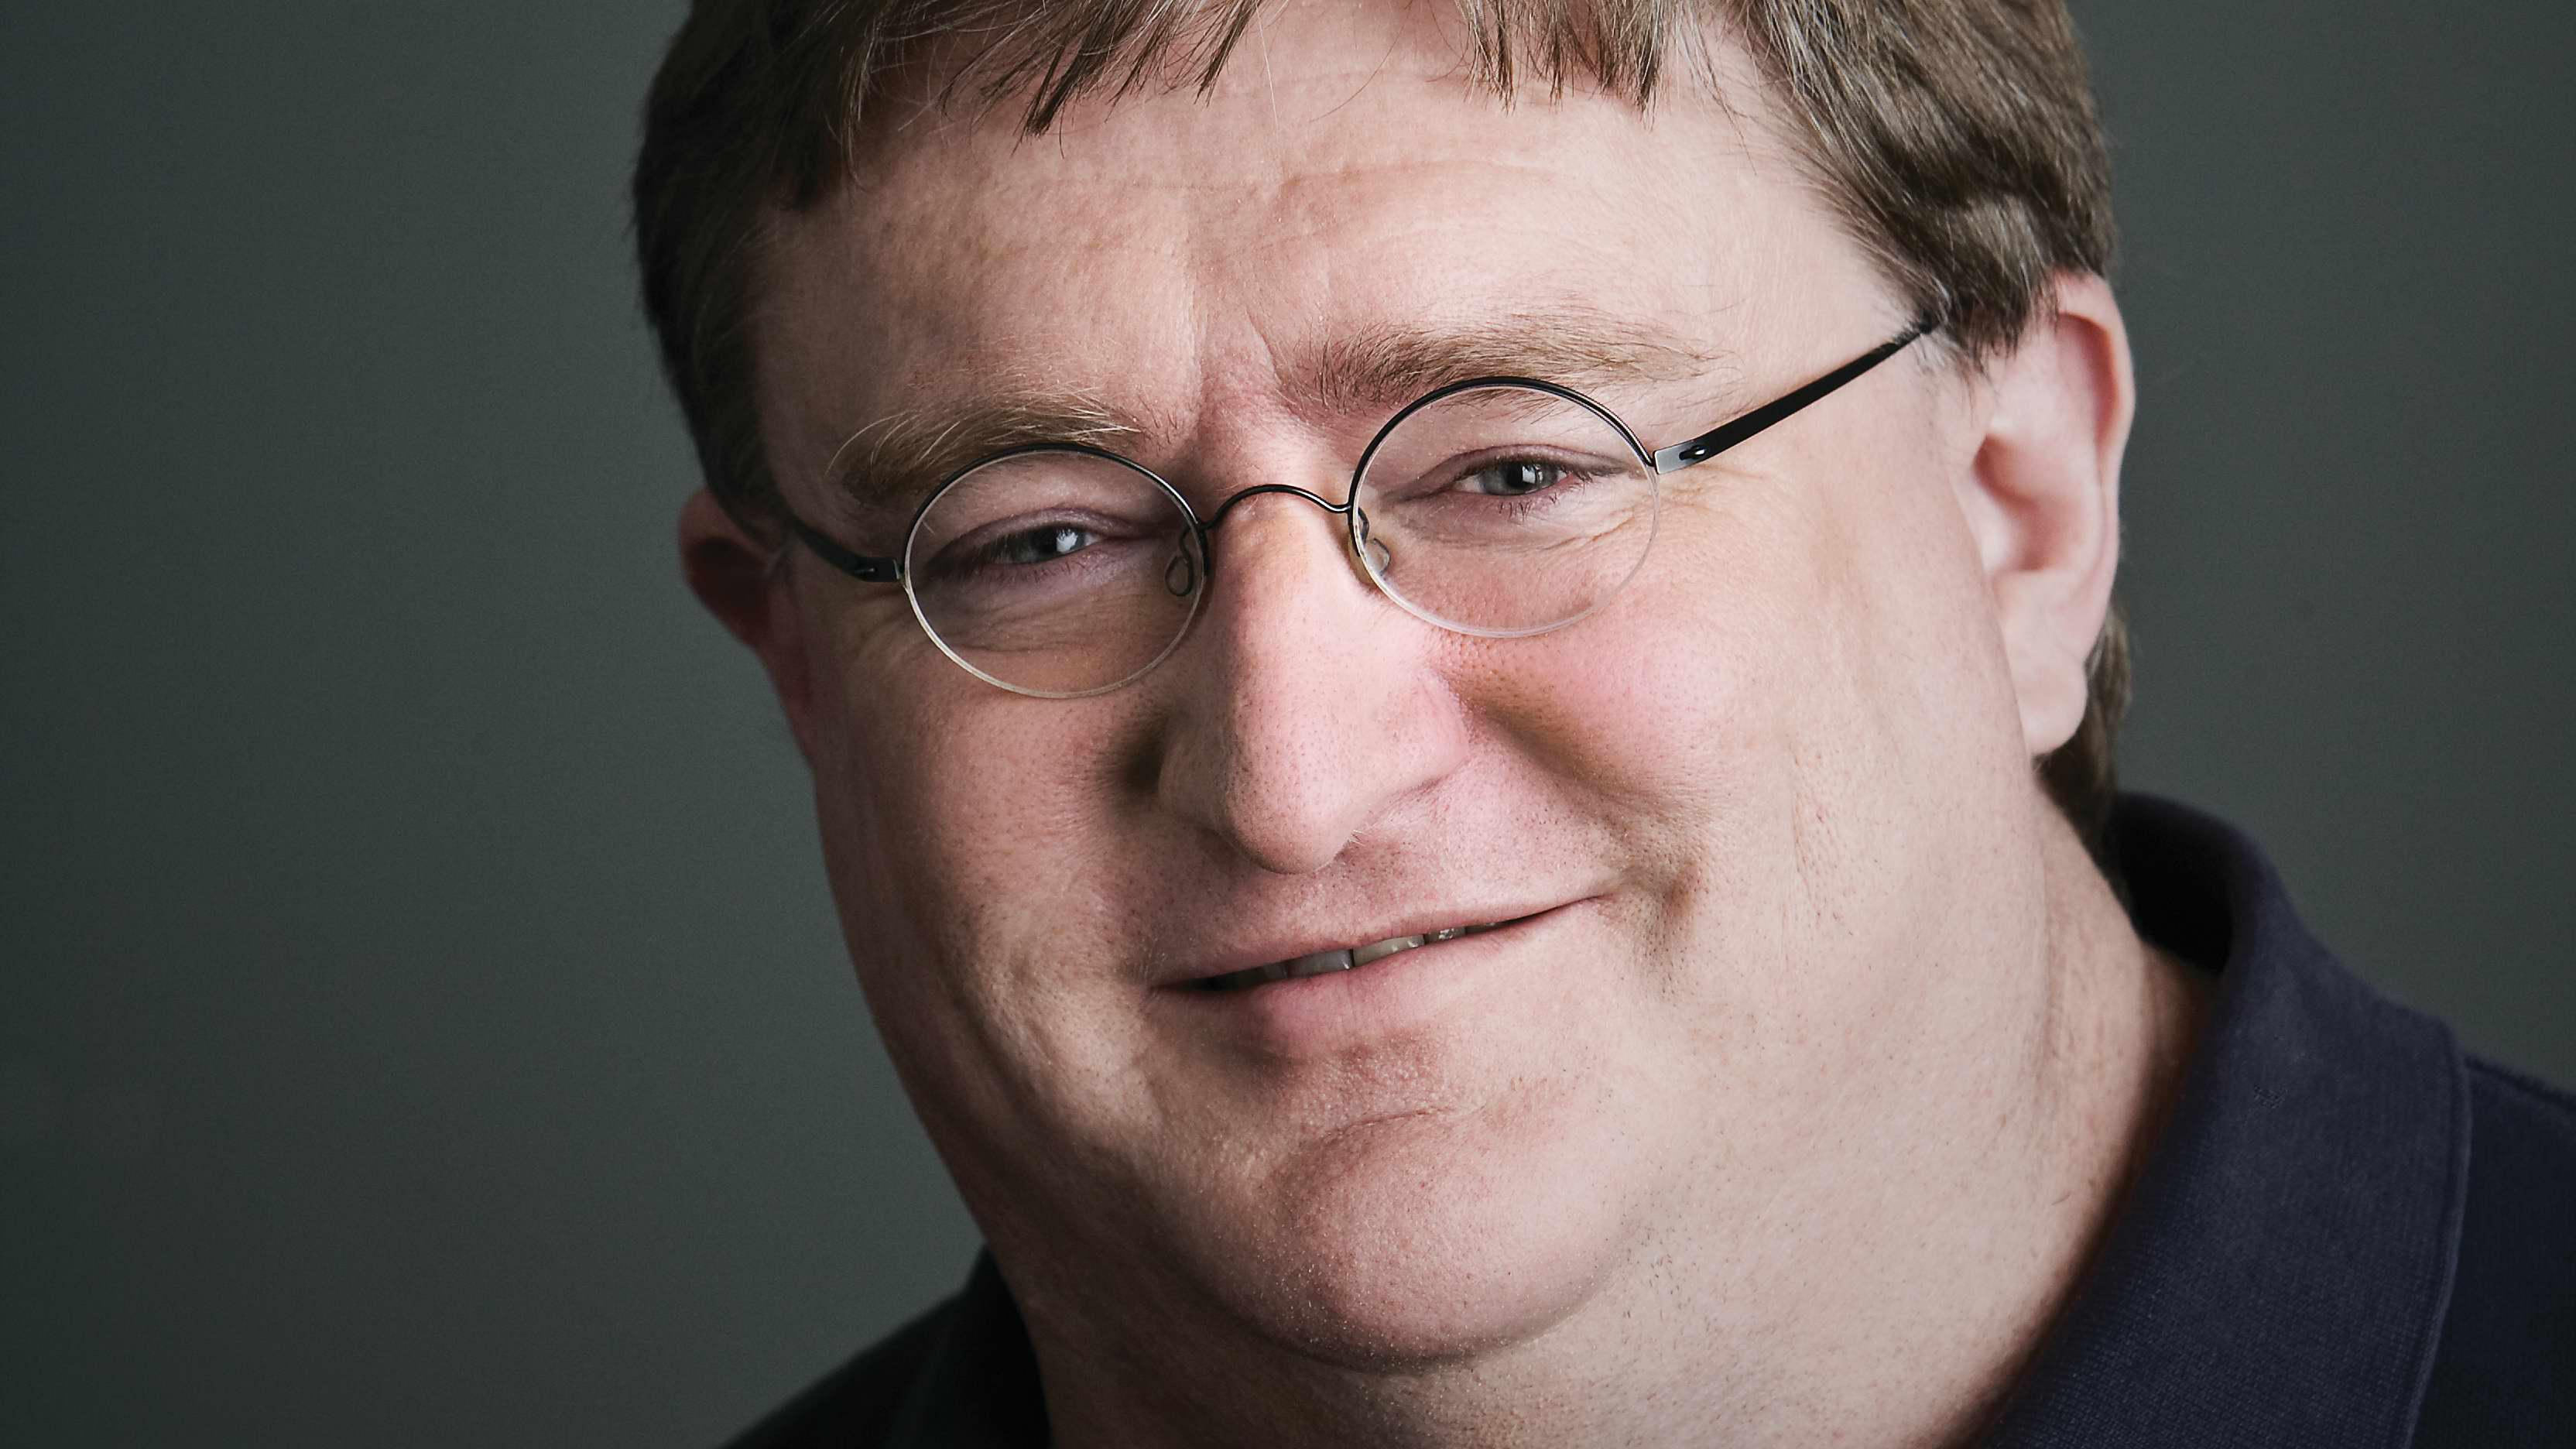 The Best Answers From The Gabe Newell and Valve Reddit Interview